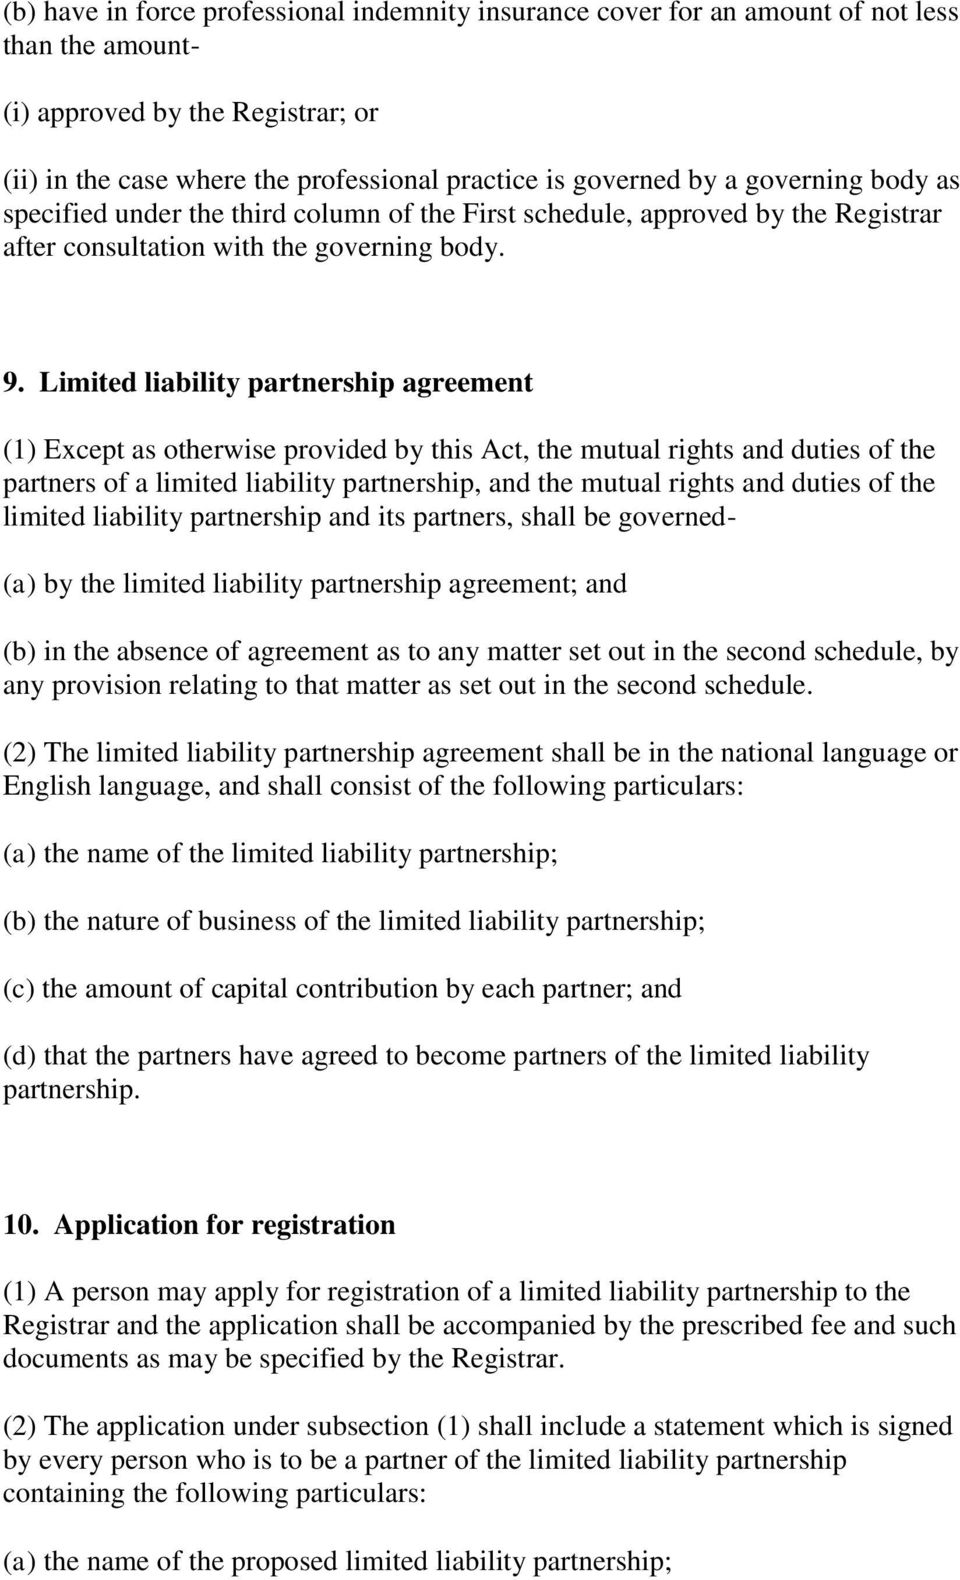 Limited liability partnership agreement (1) Except as otherwise provided by this Act, the mutual rights and duties of the partners of a limited liability partnership, and the mutual rights and duties